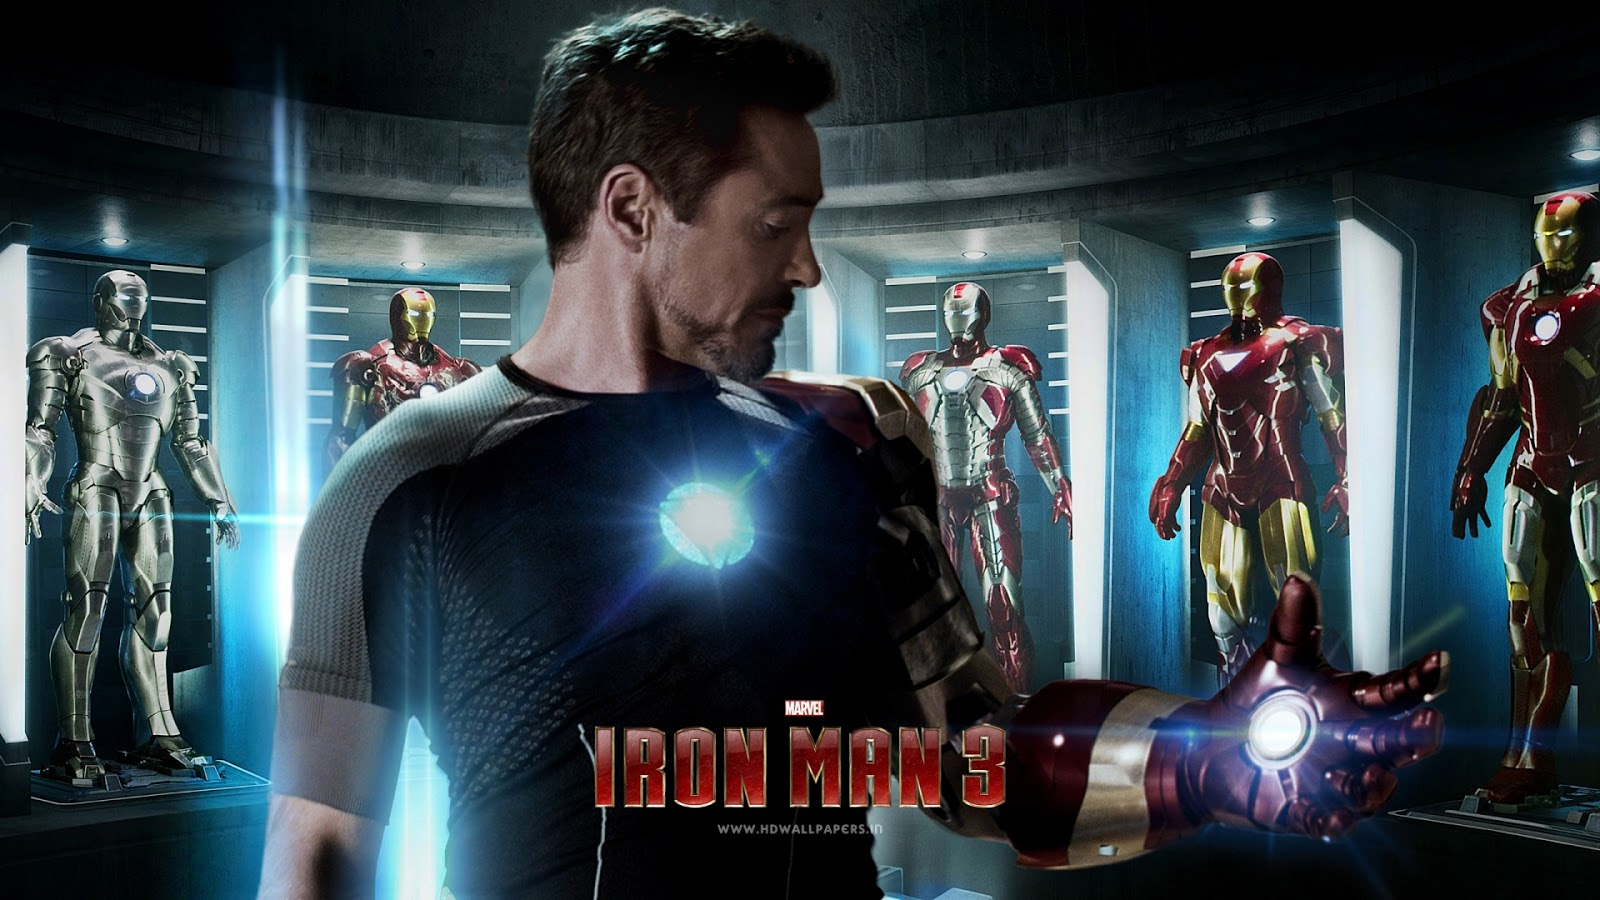 Iron Man 3 Movie HD Wallpaper